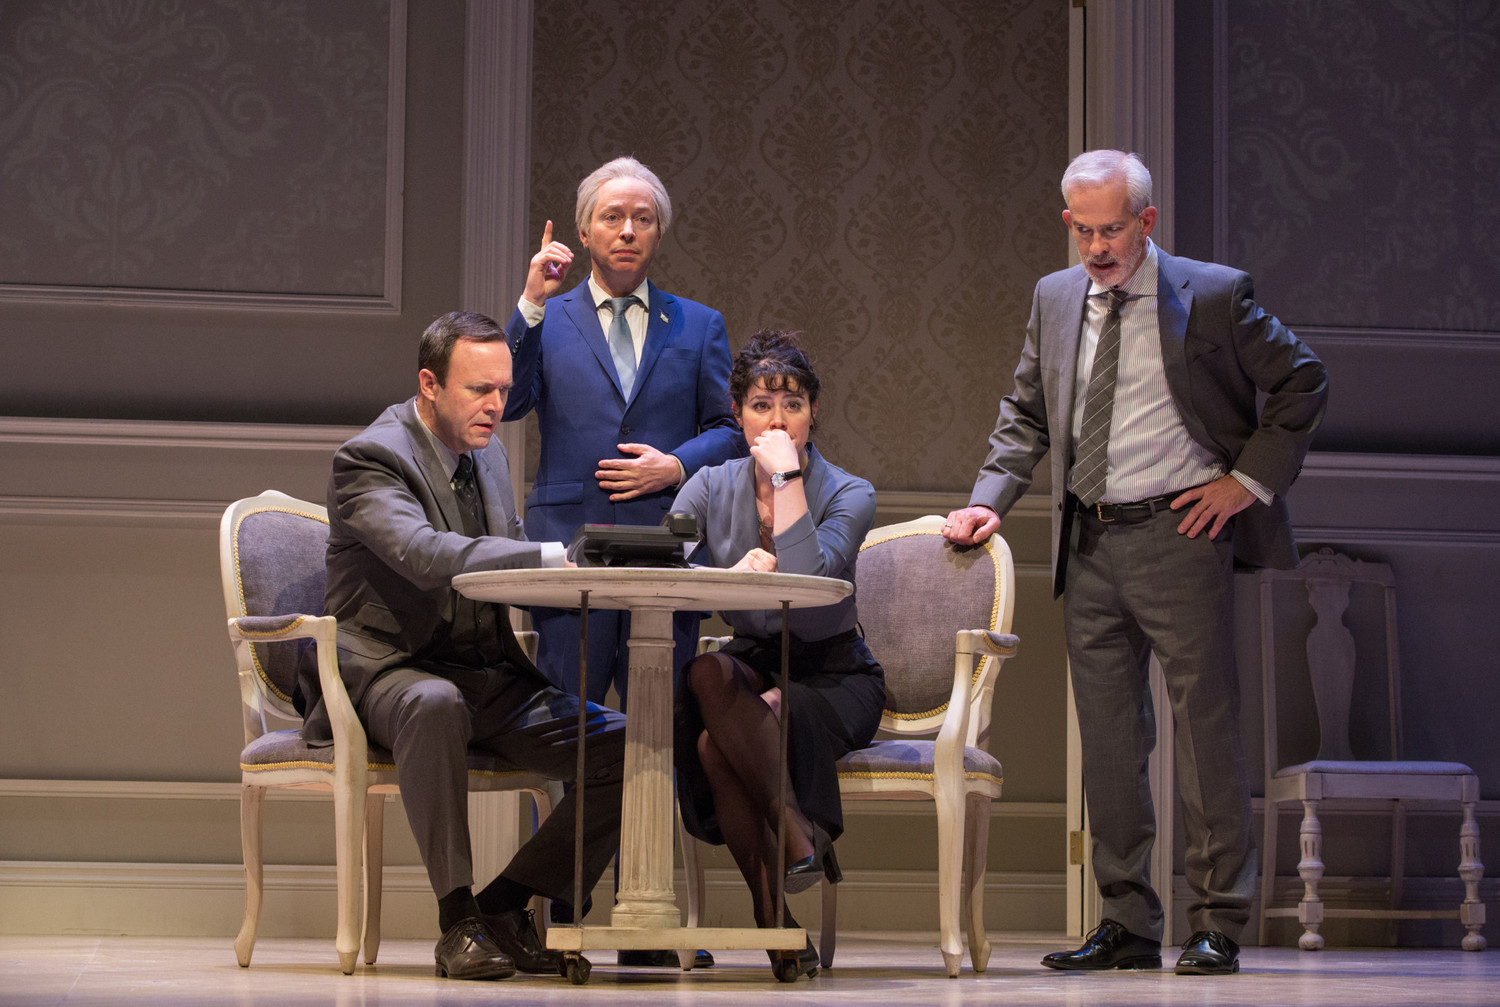 BWW Review: OSLO at Mirvish Breathes Life into the Figures Behind the Oslo Accords